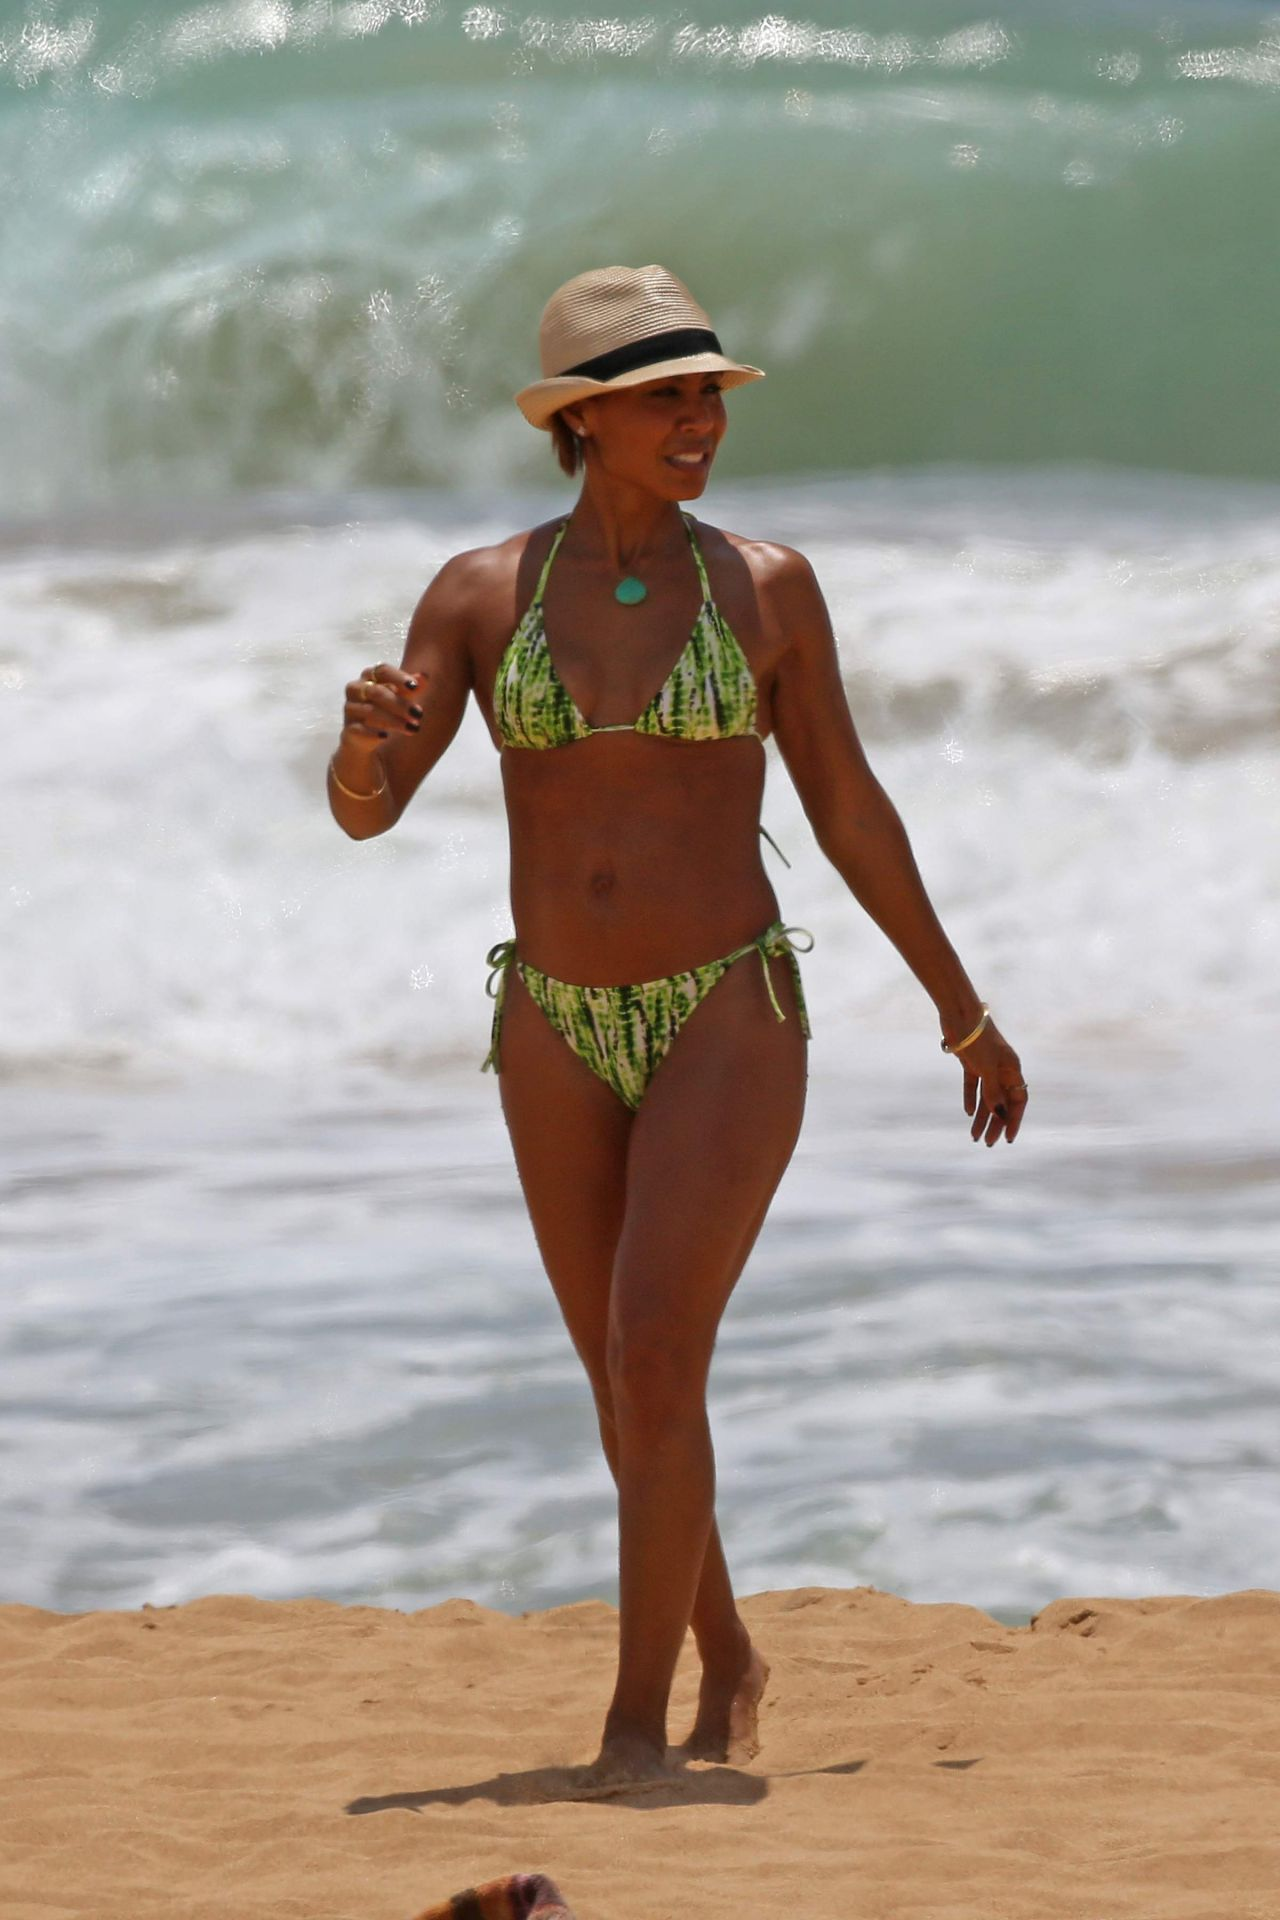 jada-pinkett-smith-in-a-bikini-on-vacation-in-hawaii-july-2015_11